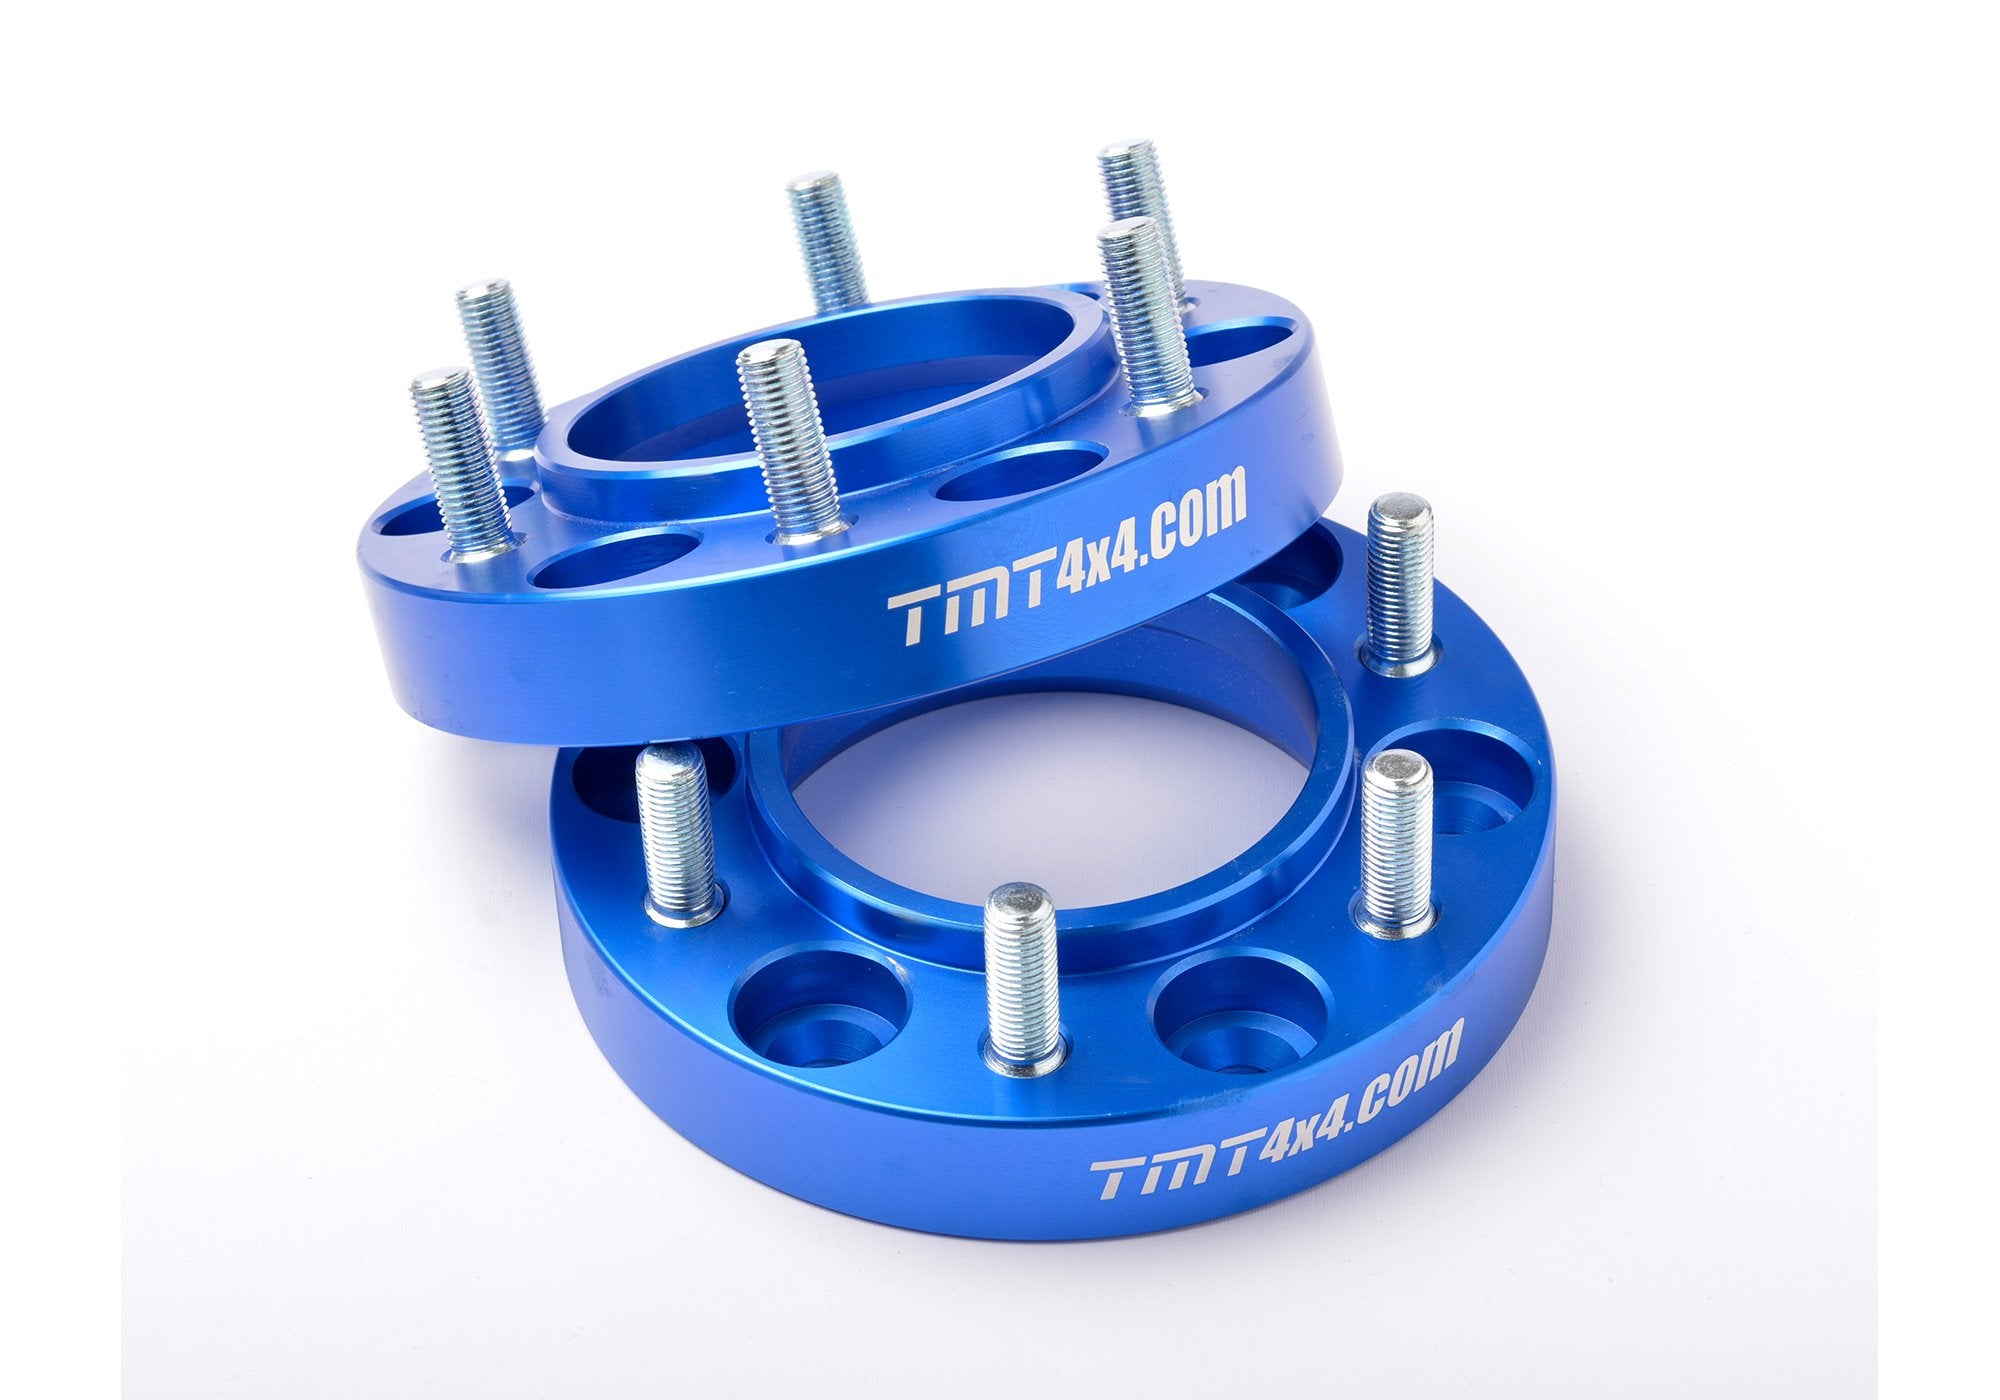 TMT WHEEL SPACERS FOR HILUX (7TH GEN), FJ CRUISER, TACOMA (2ND & 3RD GEN), 4RUNNER (3RD, 4TH & 5TH GEN), LC 90 SERIES - 6 LUGS HUB CENTRIC